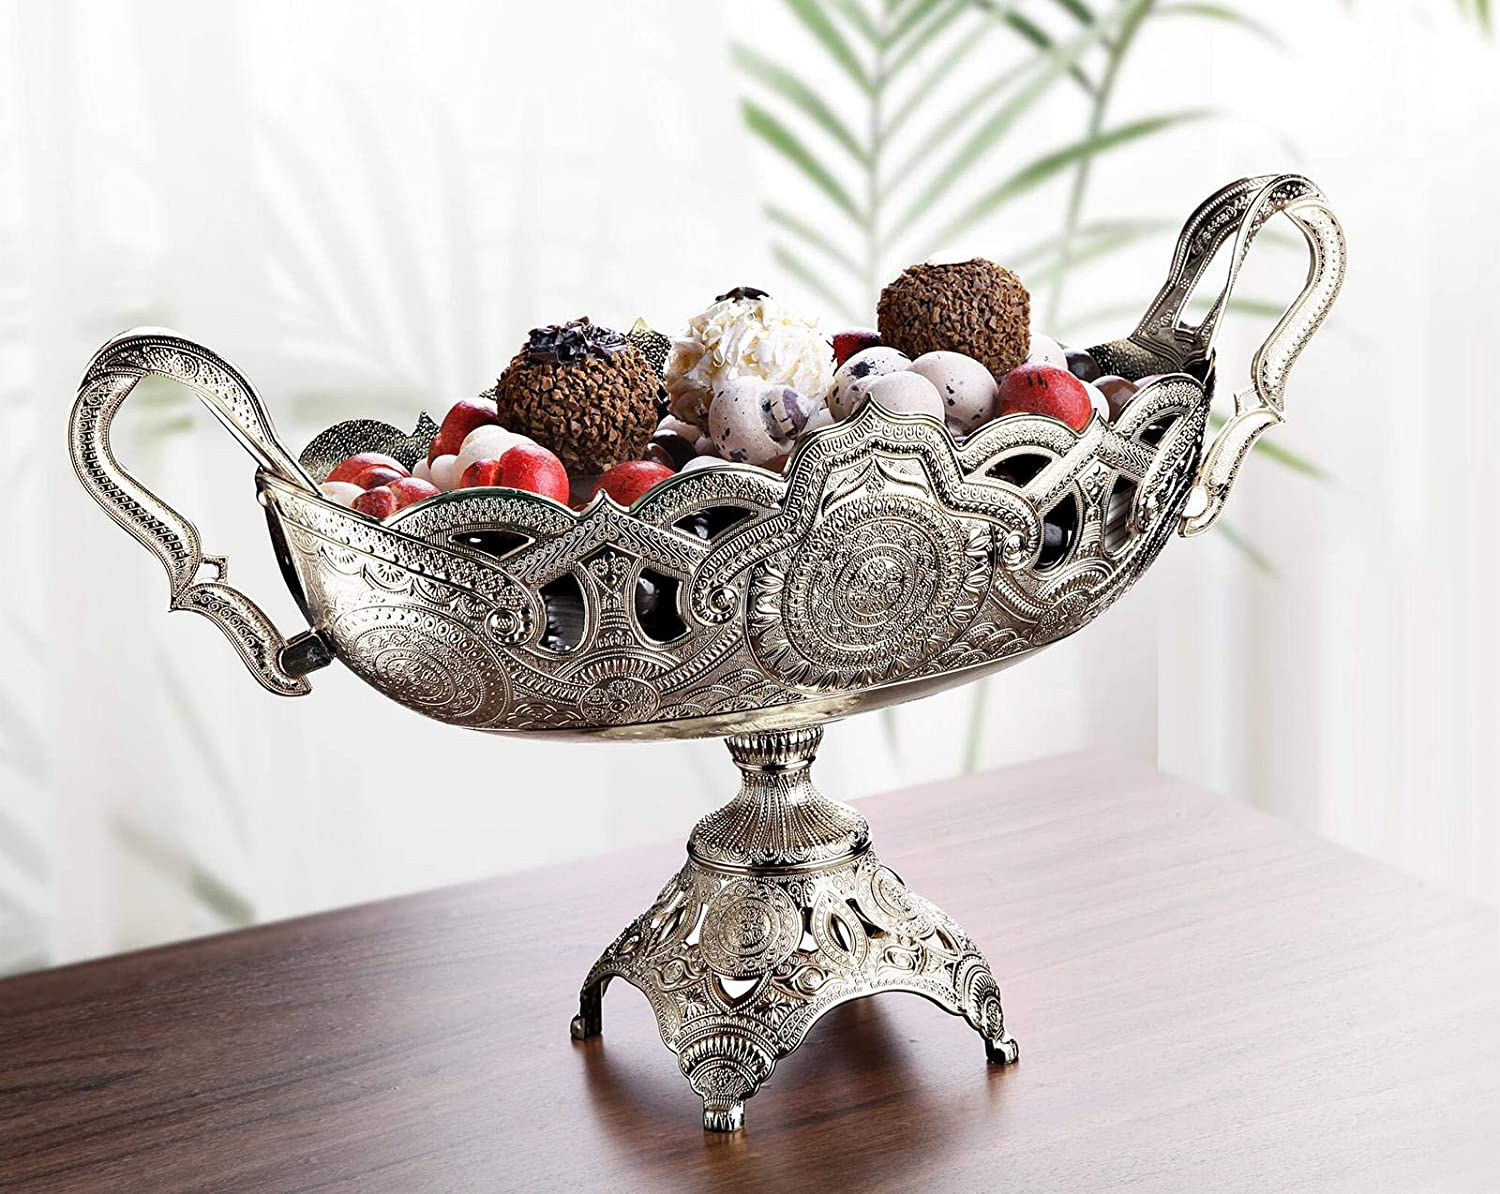 Buy Luxury Decorative Table Centerpiece Bowl For Kitchen Living Room Gold Silver Fruit Bowl Basket Centerpiece For Dining Room Table Candy Serving Bowl For Buffet Wedding Centerpieces Decor Silver 2 Online At